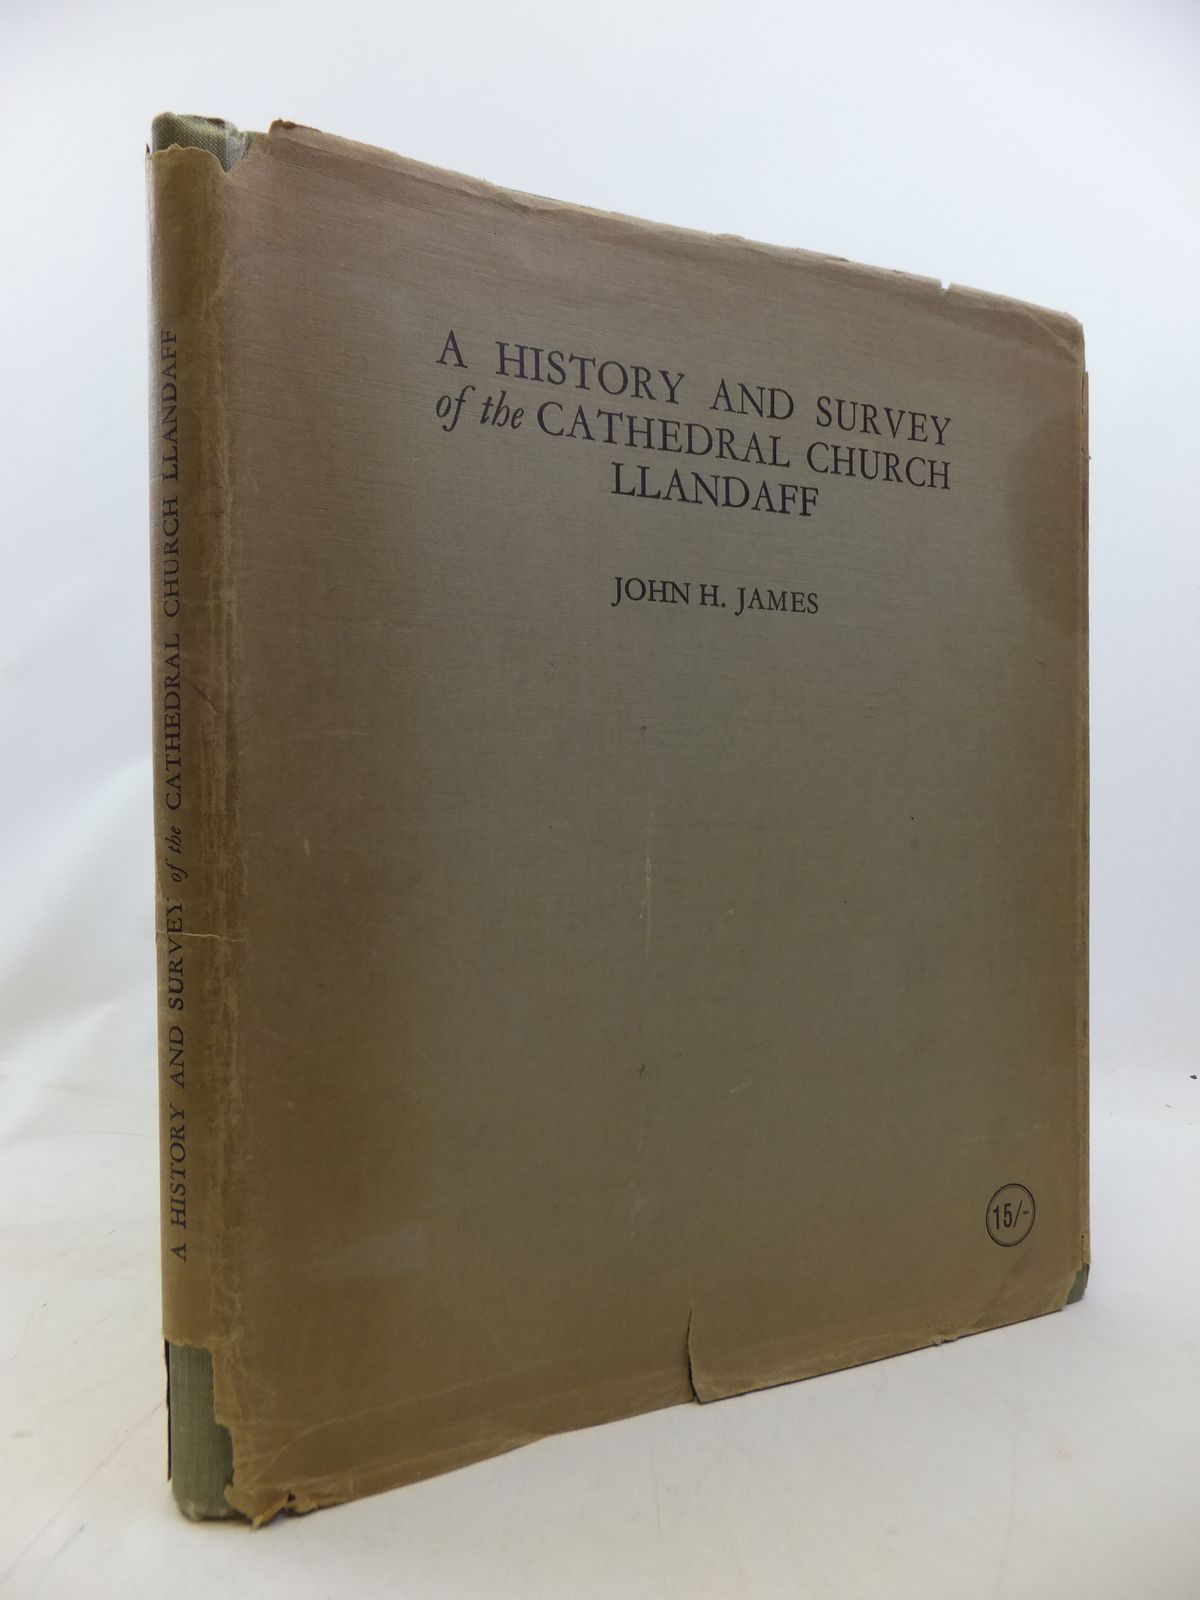 Photo of A HISTORY AND SURVEY OF THE CATHEDRAL CHURCH OF LLANDAFF written by James, John H. illustrated by James, John H. published by William Lewis (STOCK CODE: 1809220)  for sale by Stella & Rose's Books